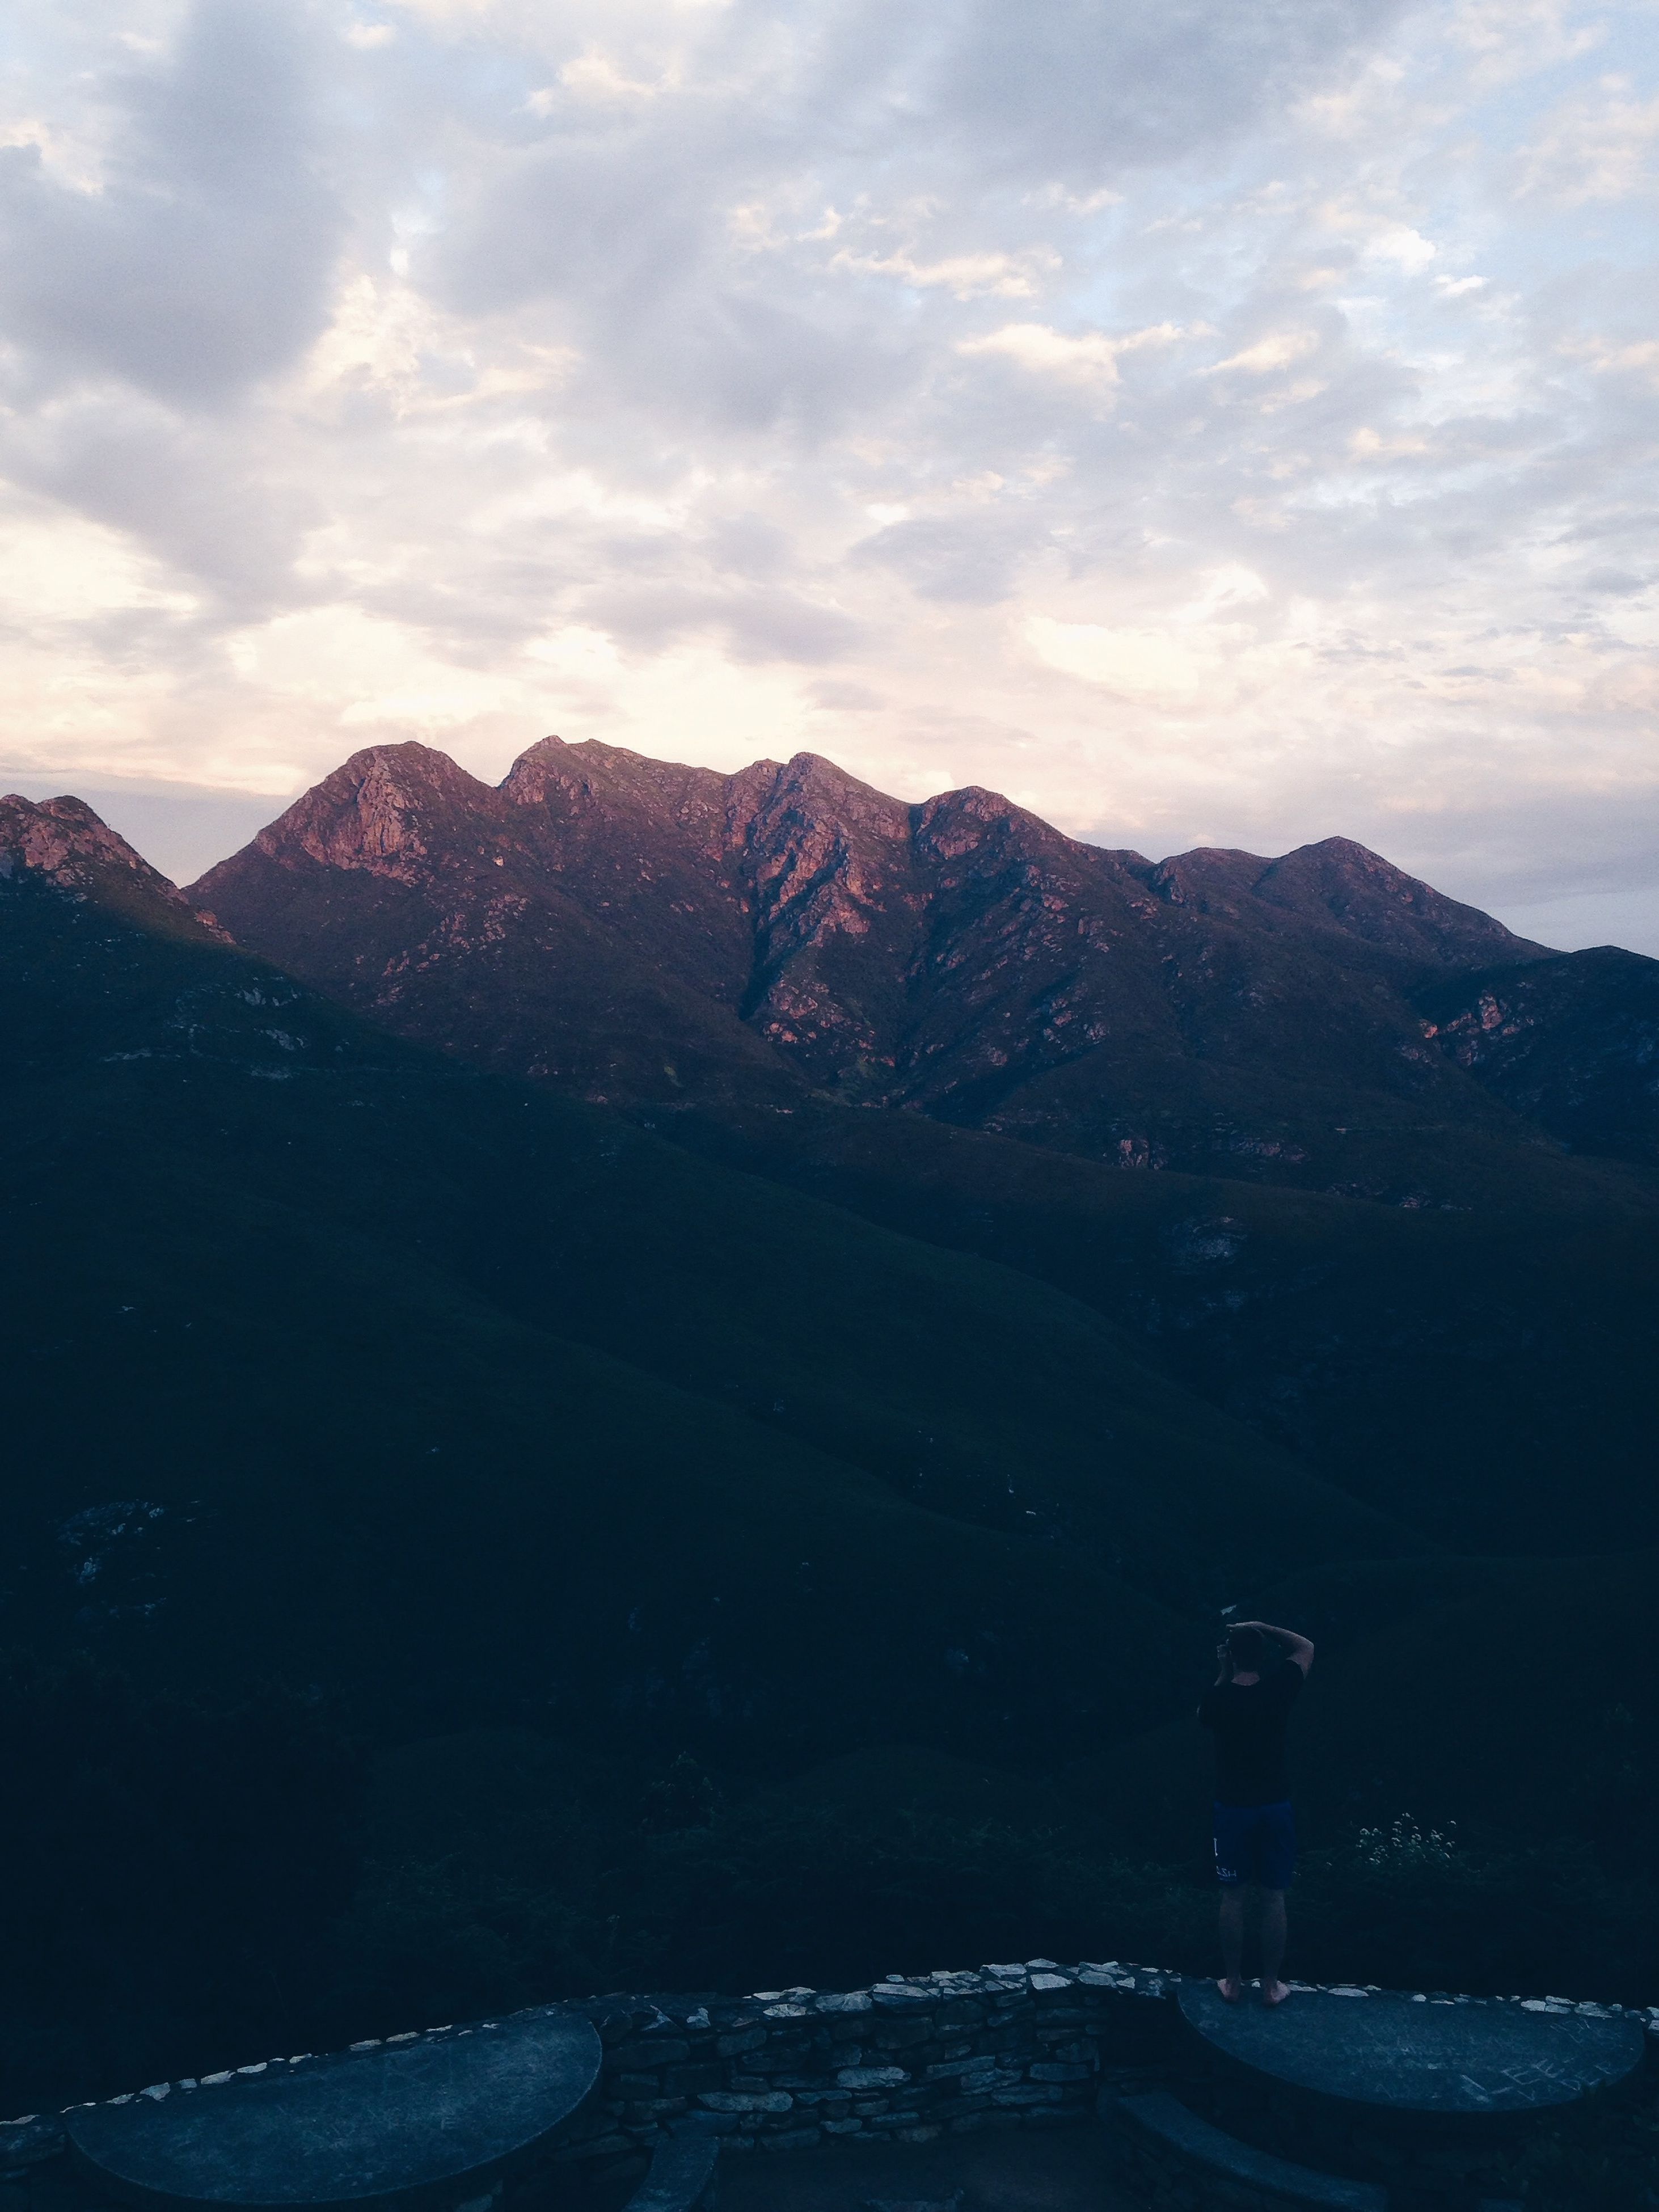 mountain, mountain range, sky, scenics, cloud - sky, tranquil scene, beauty in nature, landscape, tranquility, nature, snow, cloudy, winter, weather, cloud, snowcapped mountain, idyllic, non-urban scene, outdoors, cold temperature